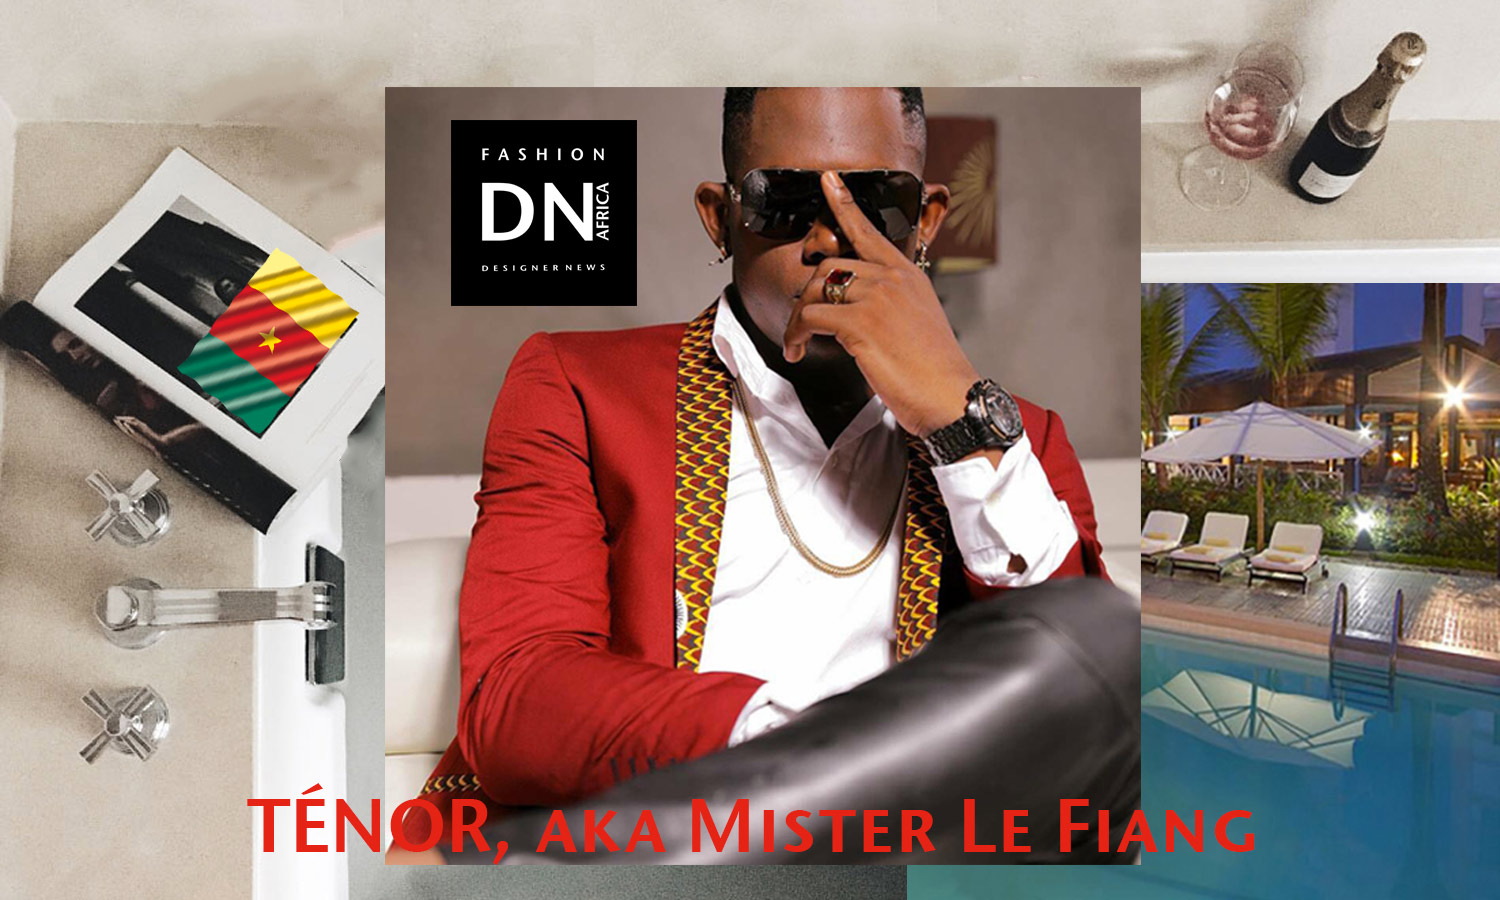 AFRICAN FASHION STYLE MAGAZINE-TÉNOR - TENOR, aka Mister Le Fiang - MARIE MBE-DN AFRICA-STUDIO 24 NIGERIA